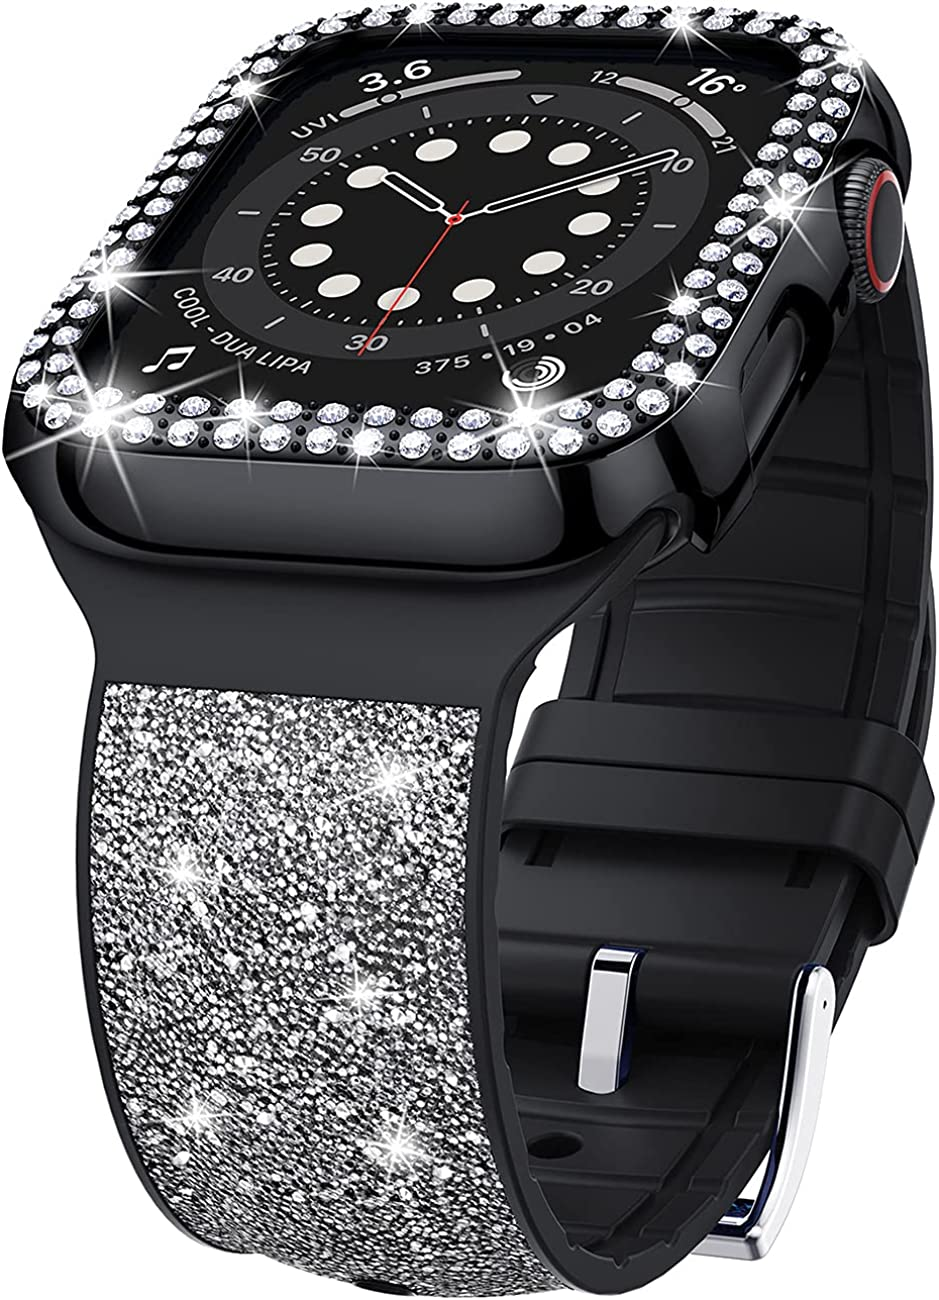 VEGO Bling Band Compatible with Apple Watch Band for Women + Rhinestone Diamond Case, Glitter Bracelet Wristband Strap with Bling Bumper Protective Cover for iWatch SE Series 6/5/4/3/2/1